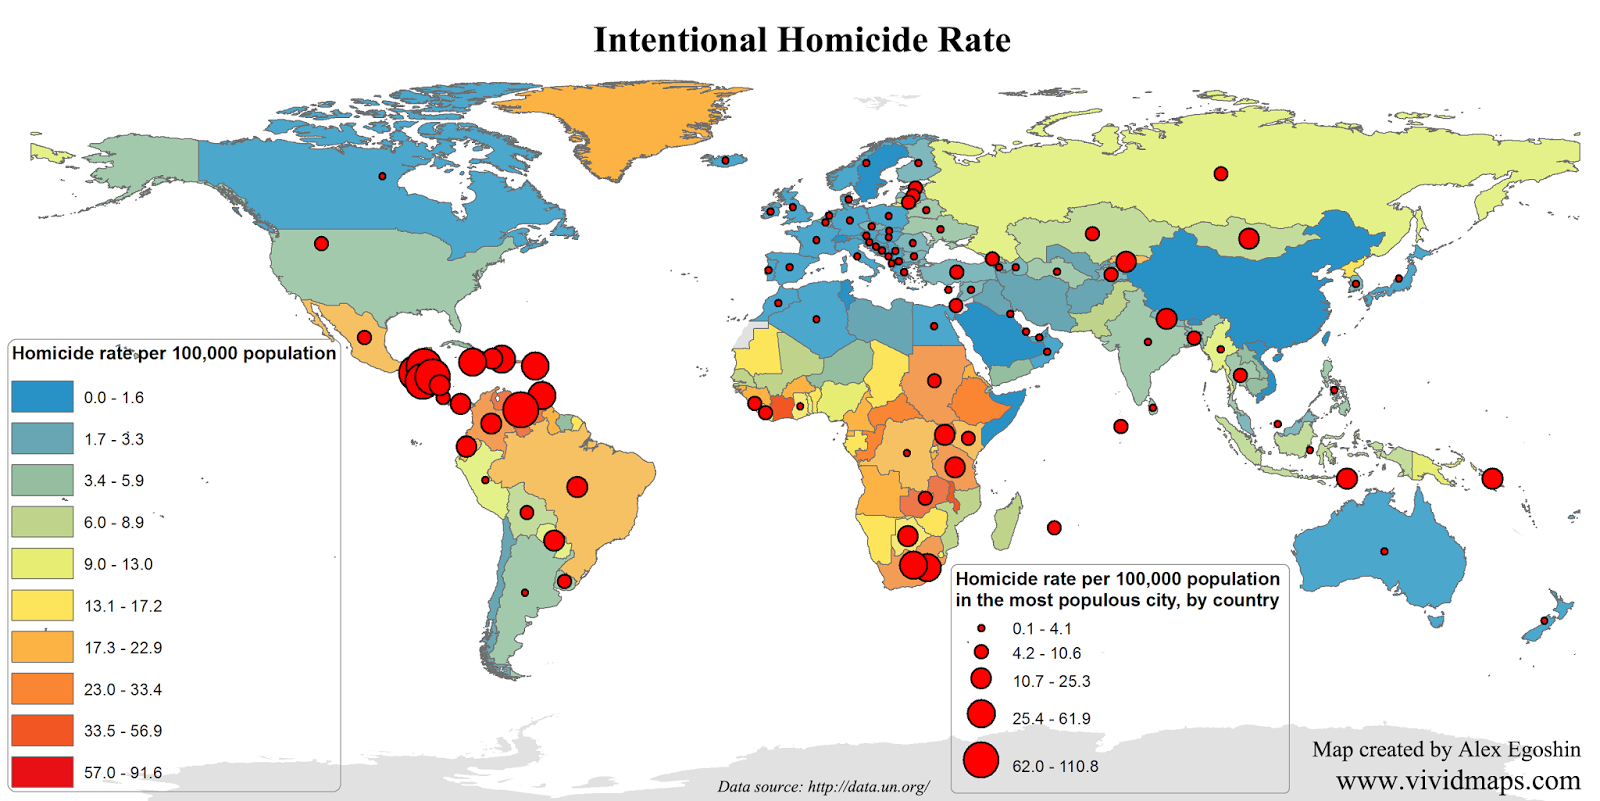 Intentional homicide count and rate per 100,000 population in the most populous city, by country